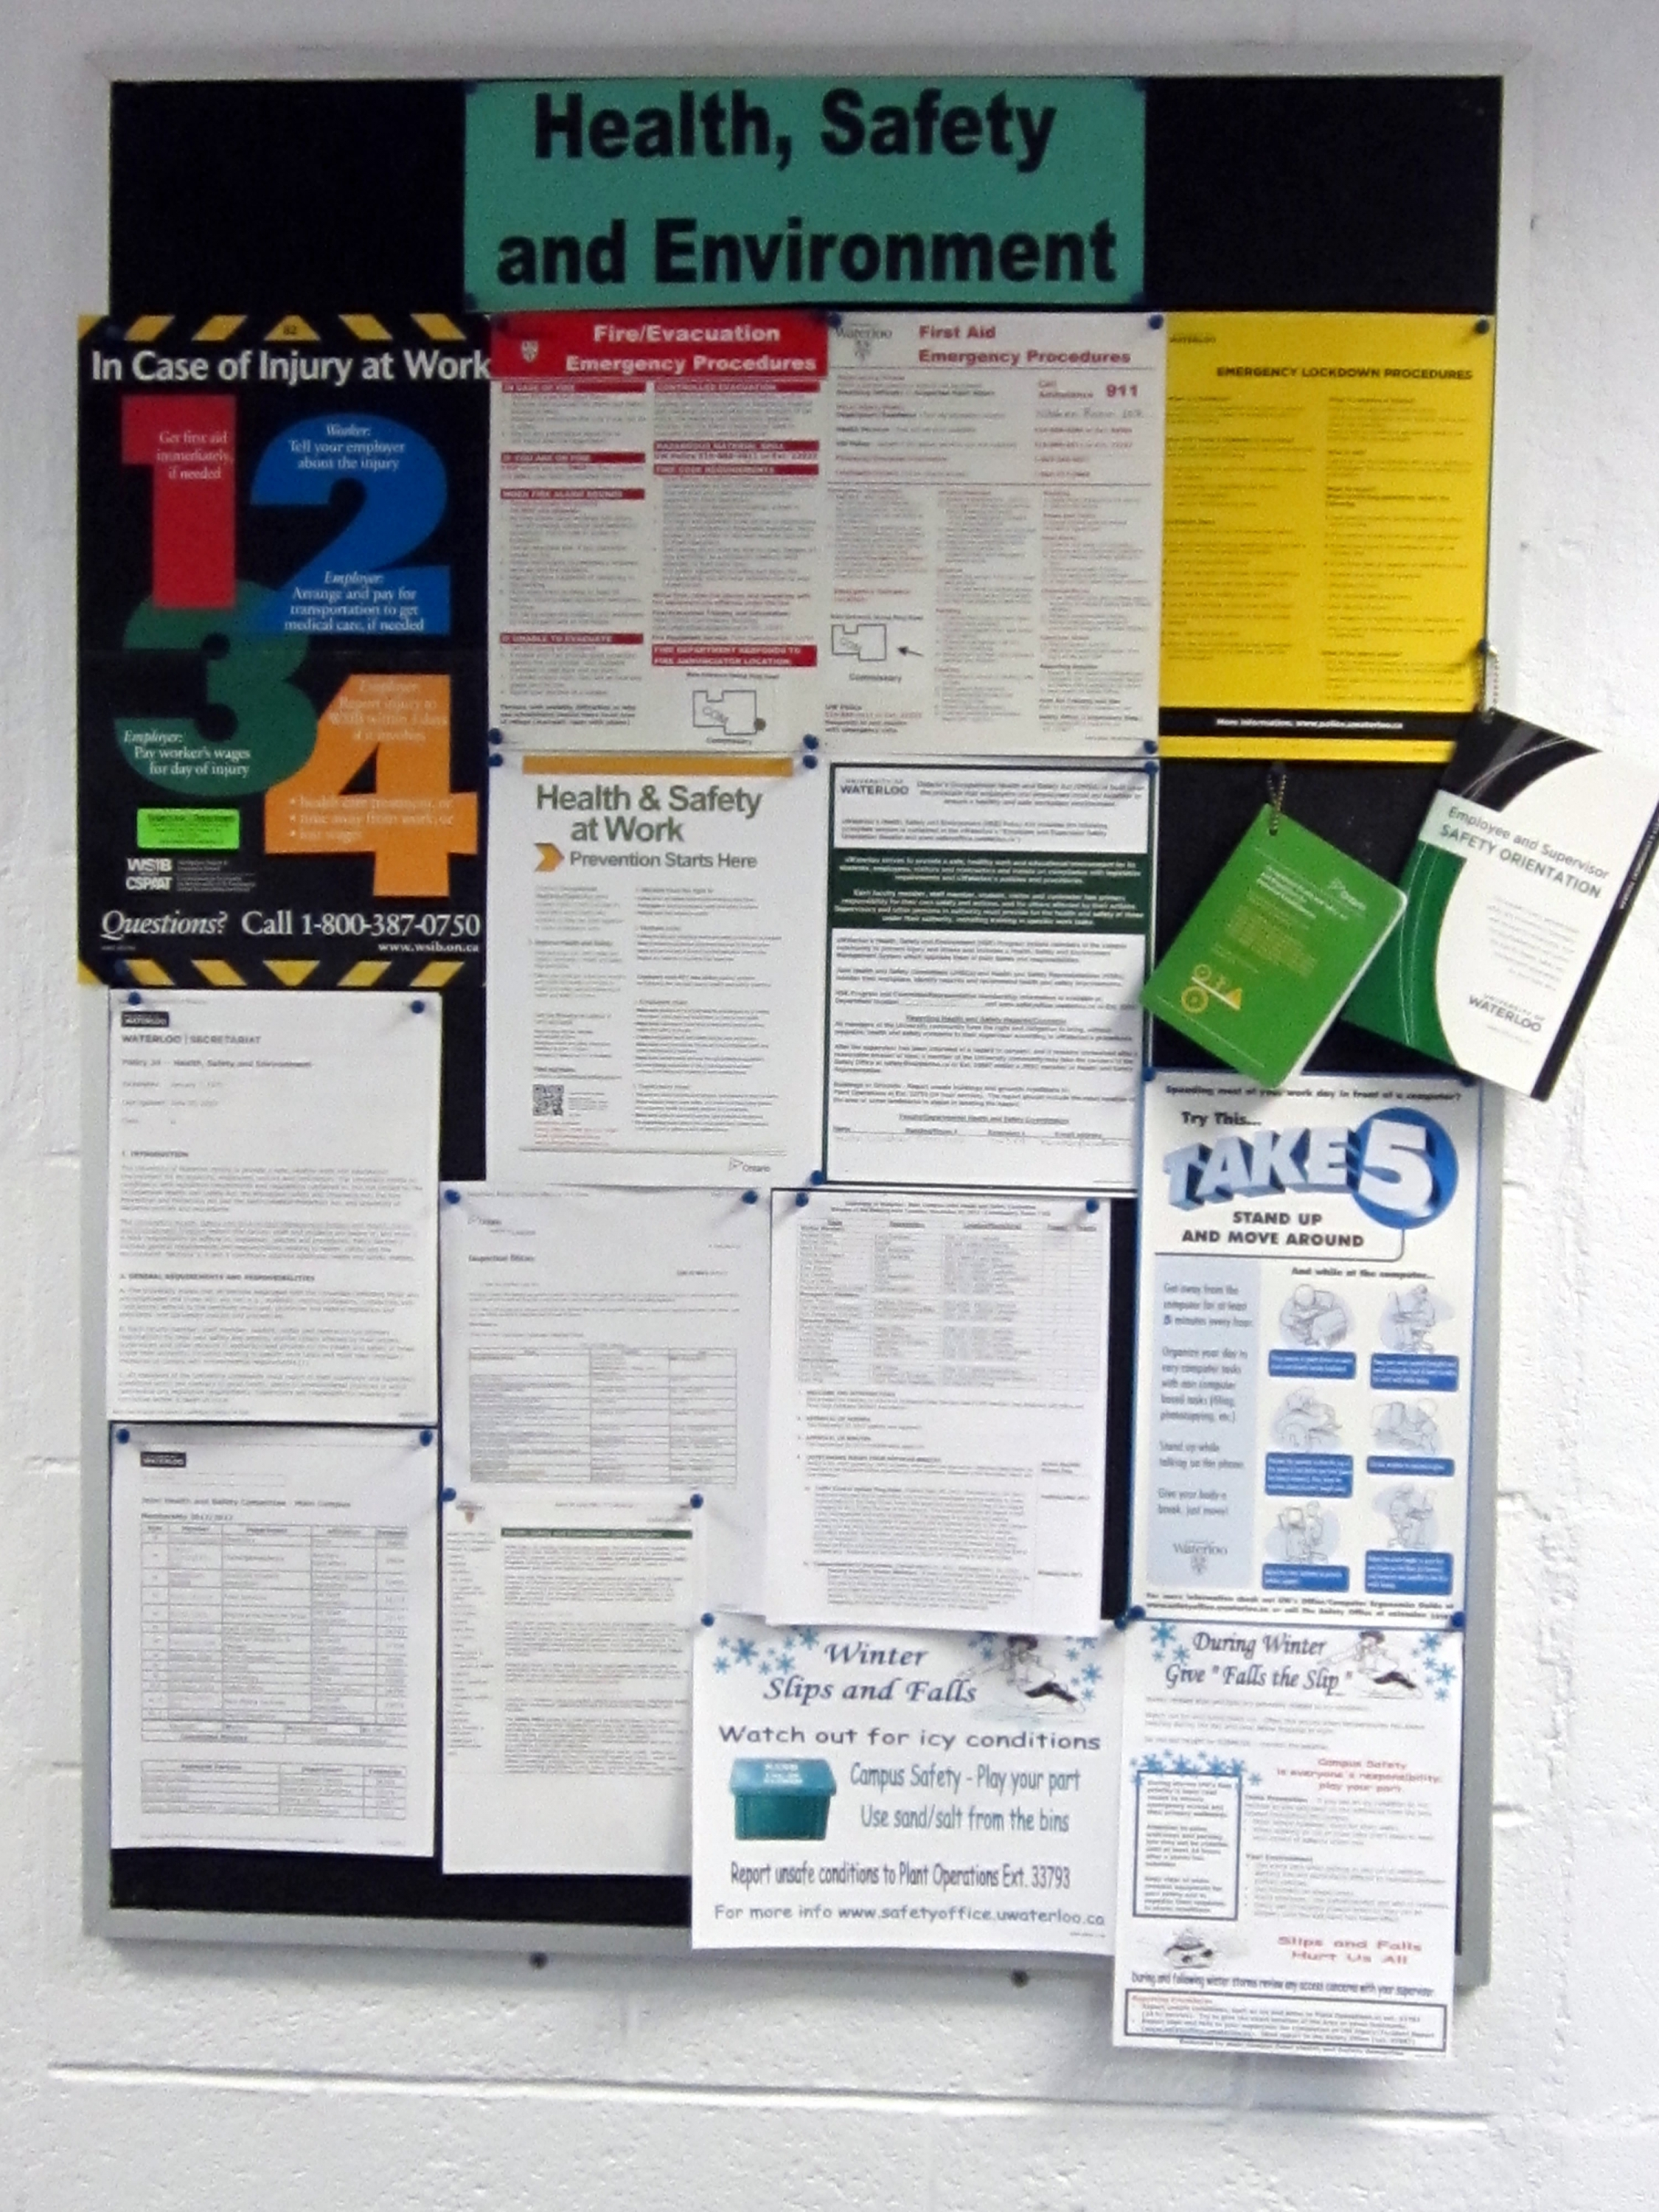 Posting Requirements Safety Office University Of Waterloo